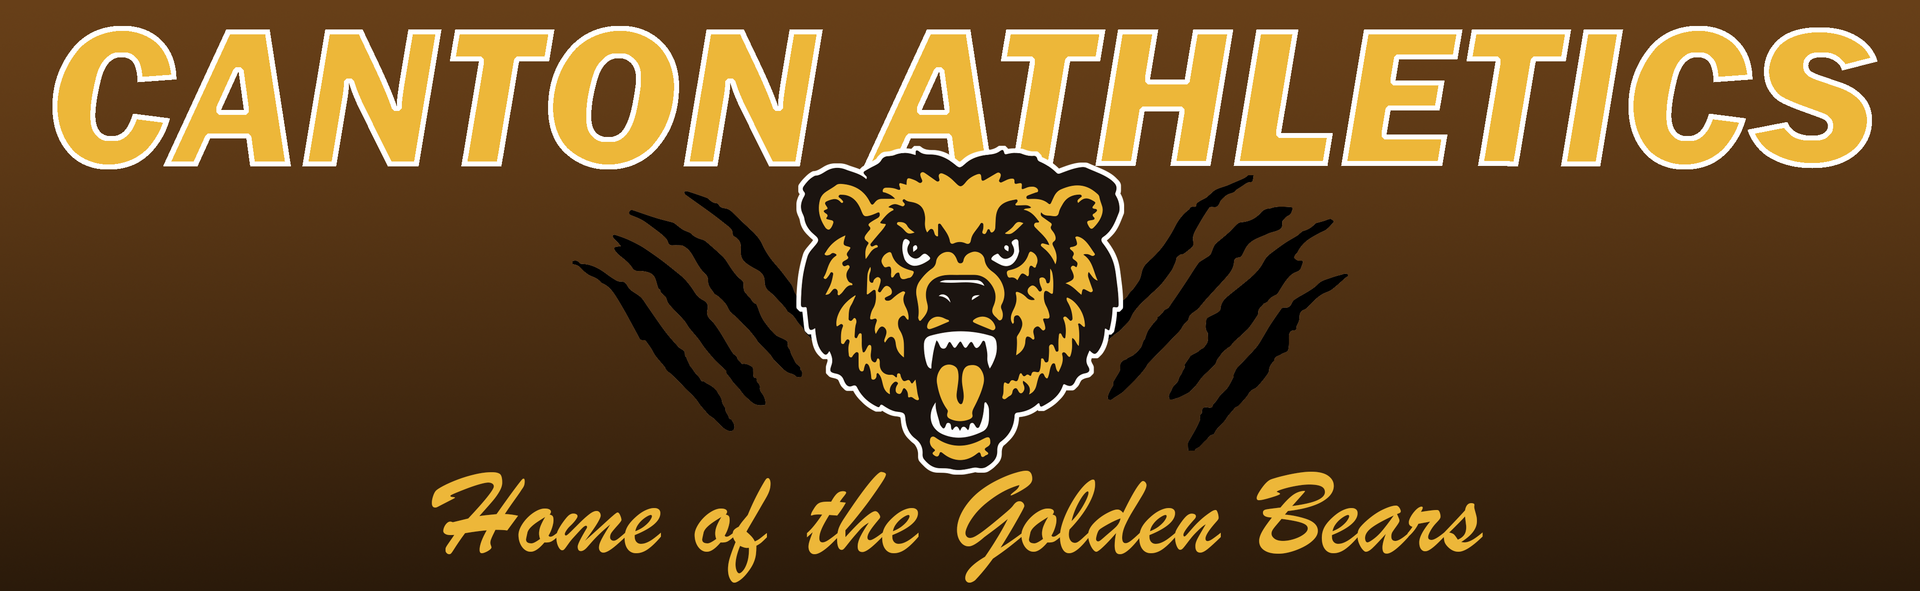 Header Image that reads 'Canton Athletics, Home of the Golden Bears' and displays an image of a growling bear.